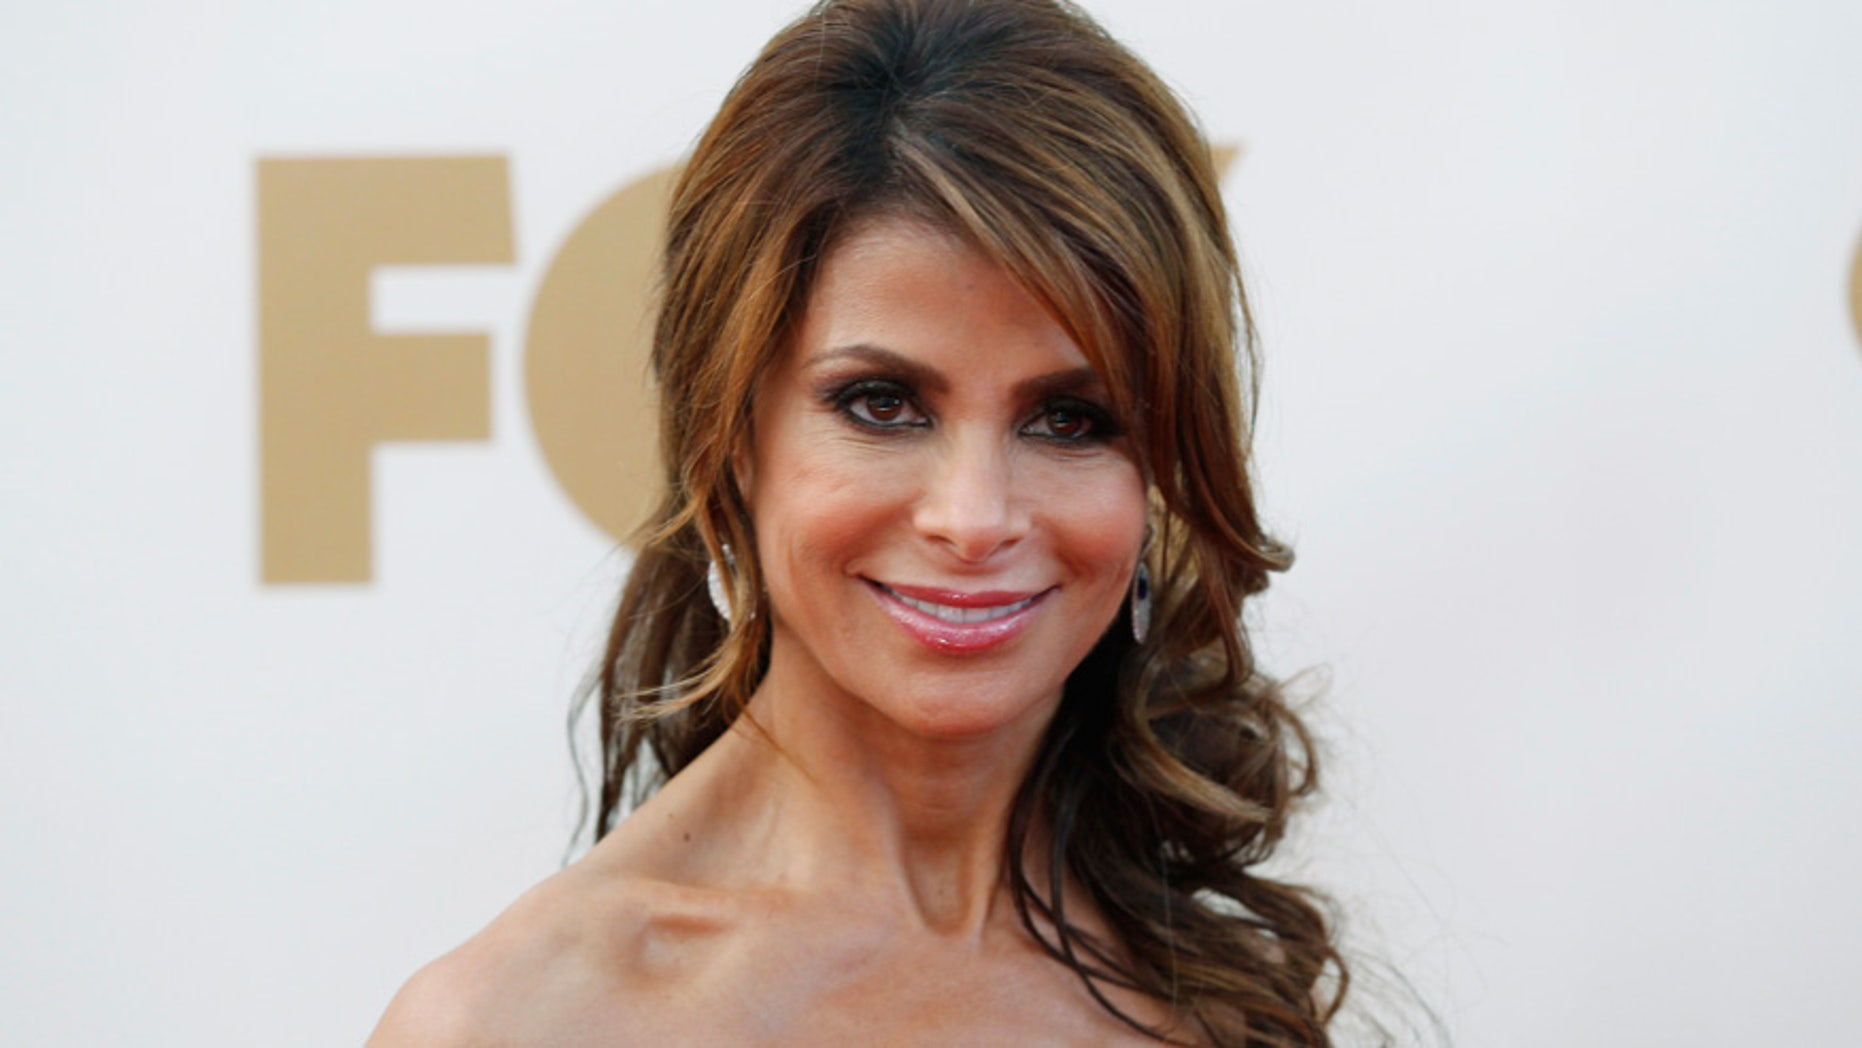 Paula Abdul falls off stage during MS concert